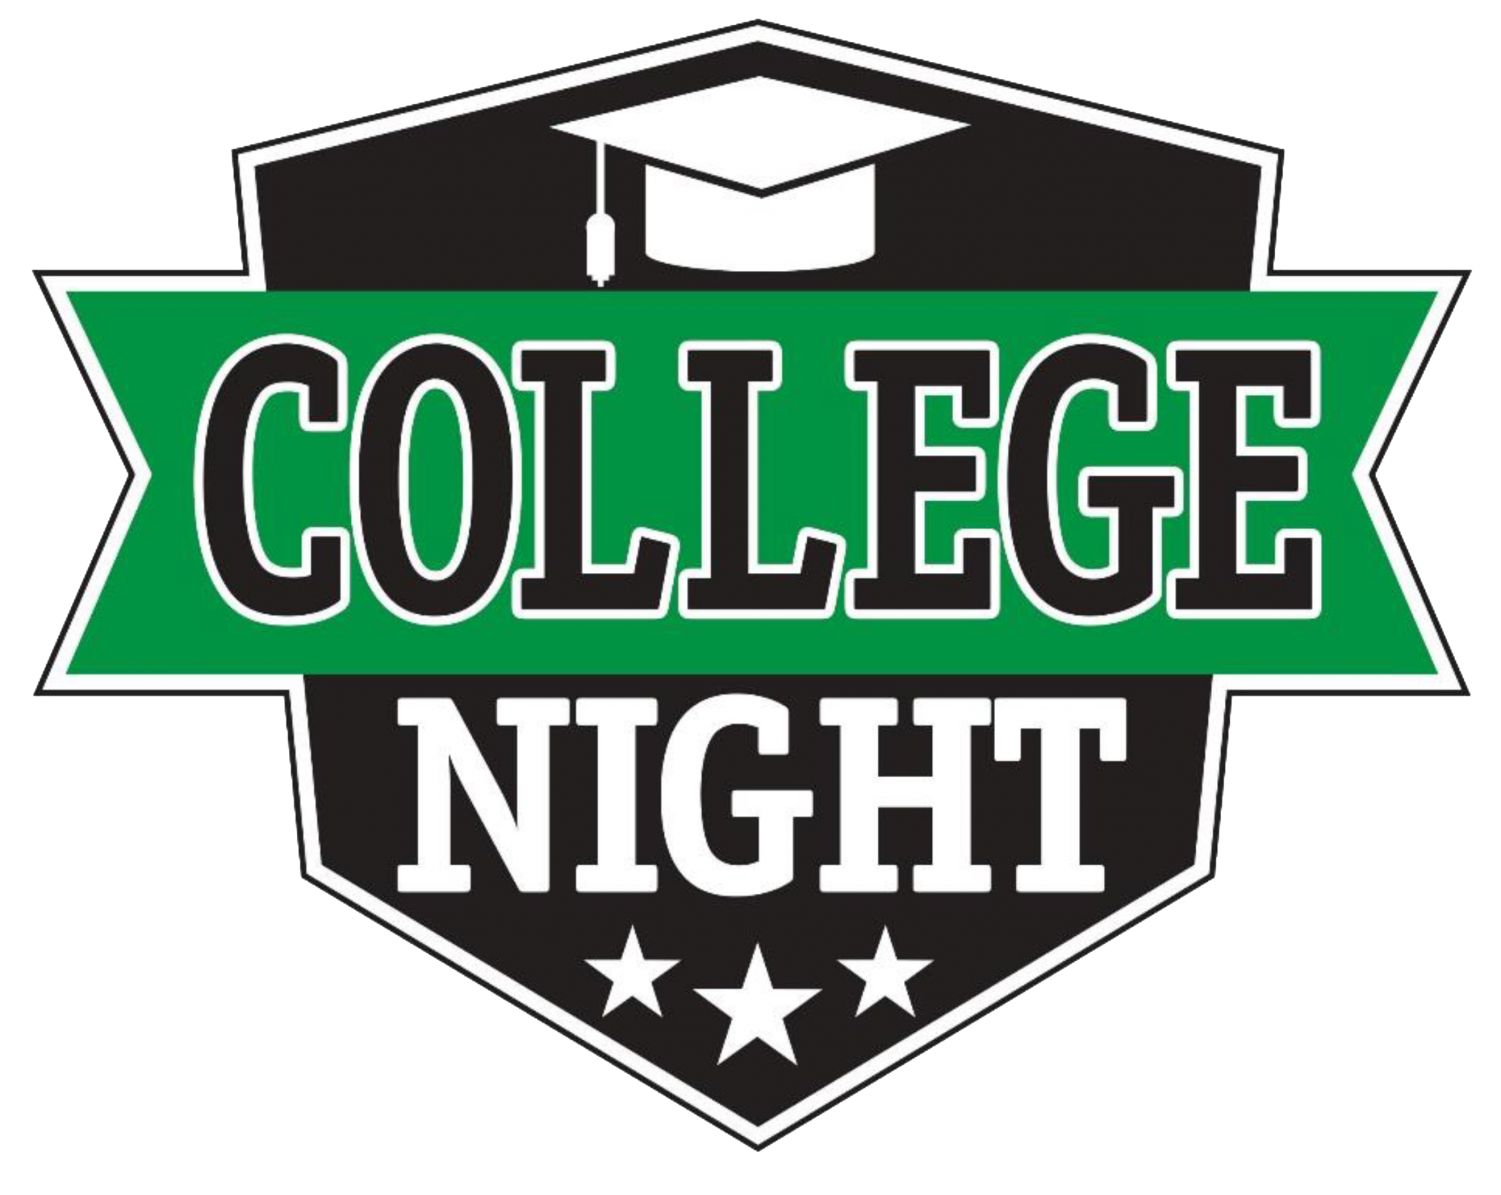 Sophomore College Night